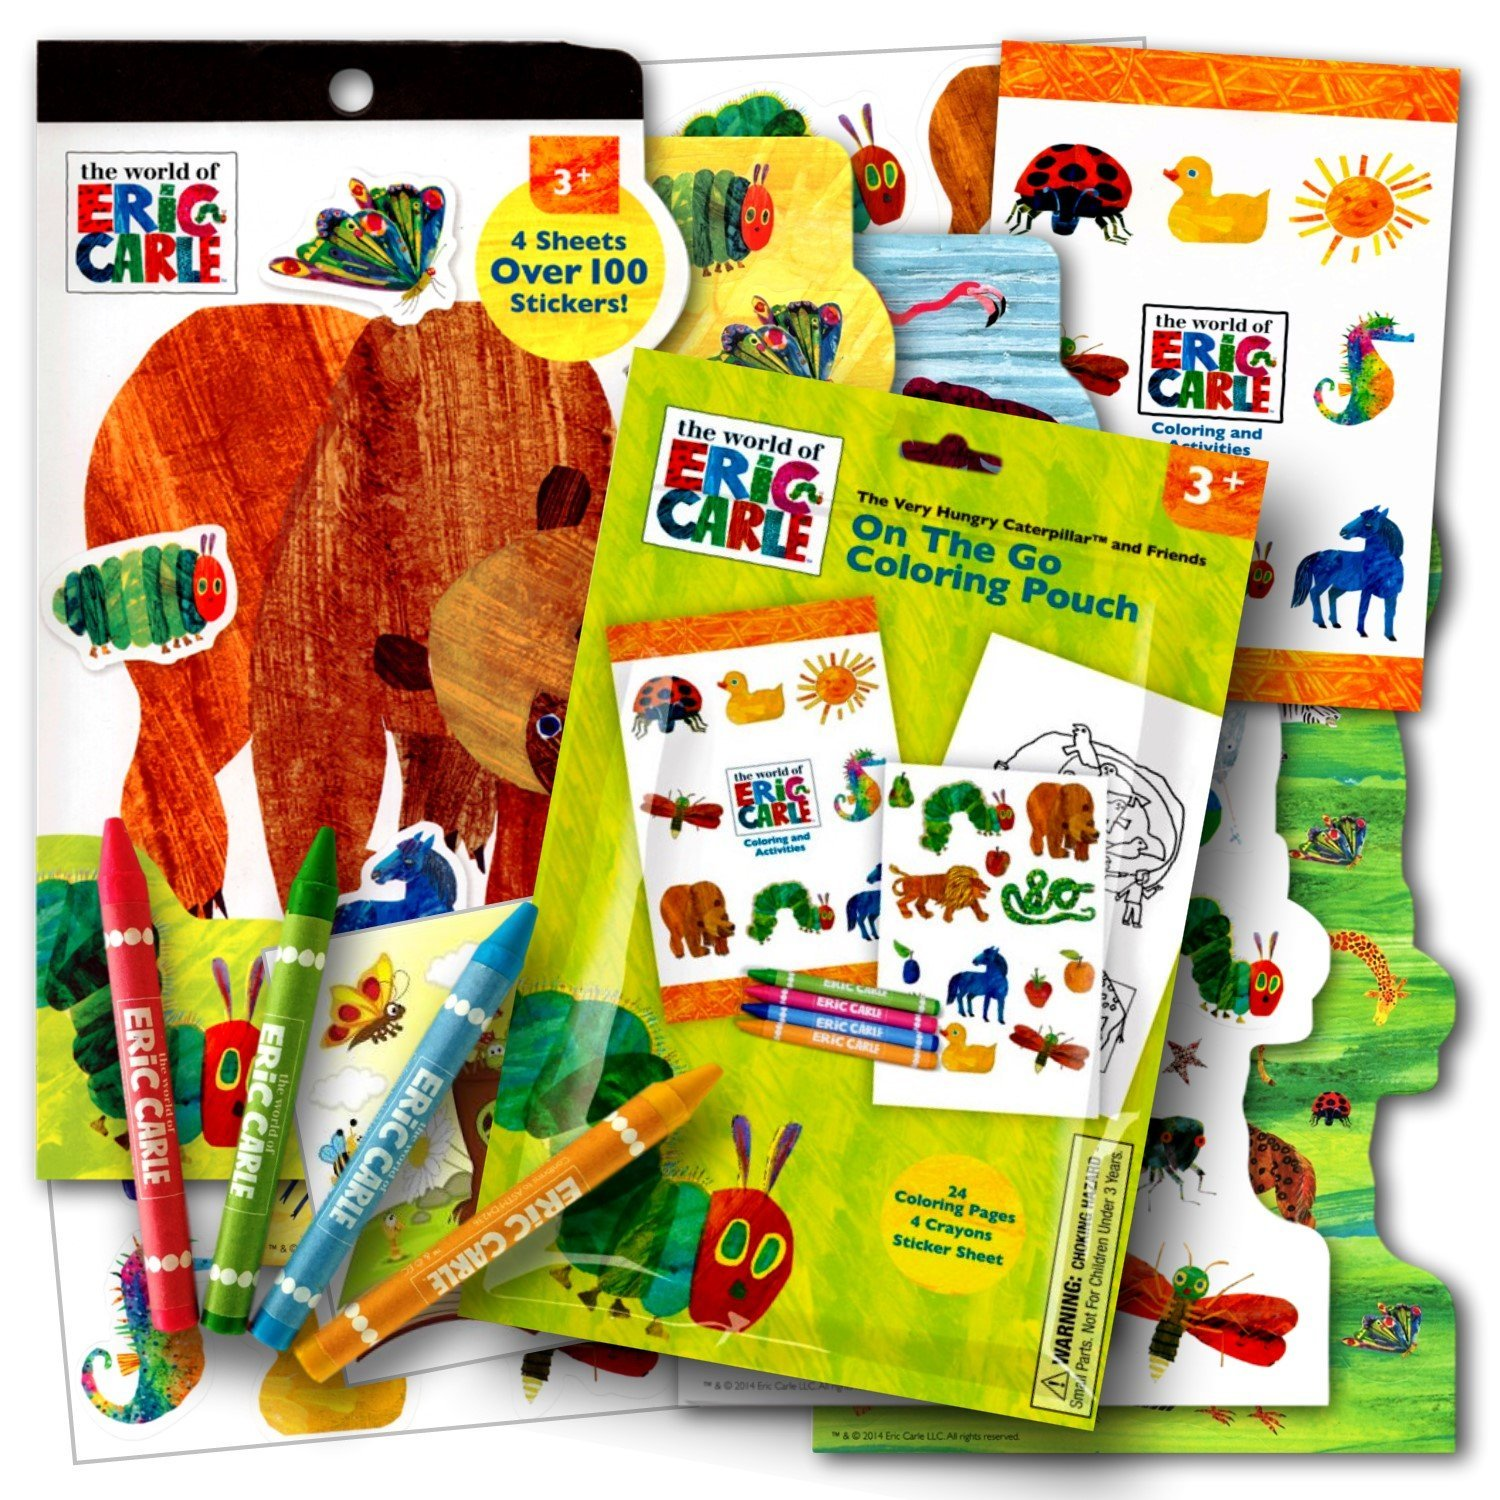 World of Eric Carle Coloring Activity Set with Crayons, Stickers, Coloring Book, 4 Sheet Shaped Sticker Pad - The Very Hungry Caterpillar, Very Busy Spider, Brown Bear, and more! Plus 1 Fun Sticker